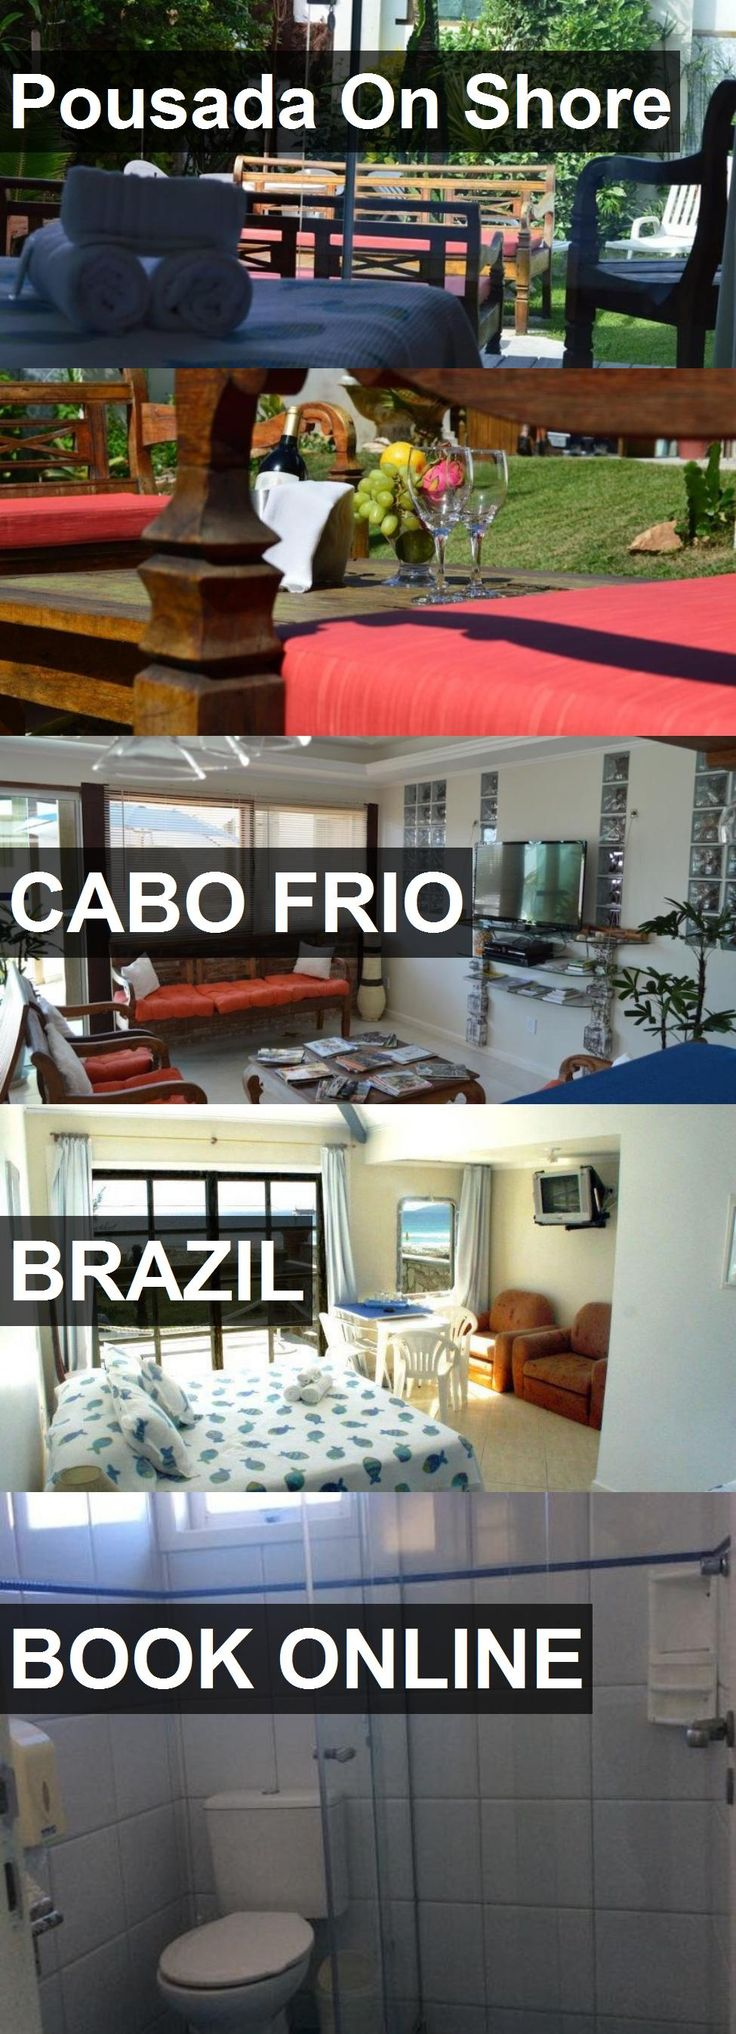 Hotel Pousada On Shore in Cabo Frio, Brazil. For more information, photos, reviews and best prices please follow the link. #Brazil #CaboFrio #PousadaOnShore #hotel #travel #vacation